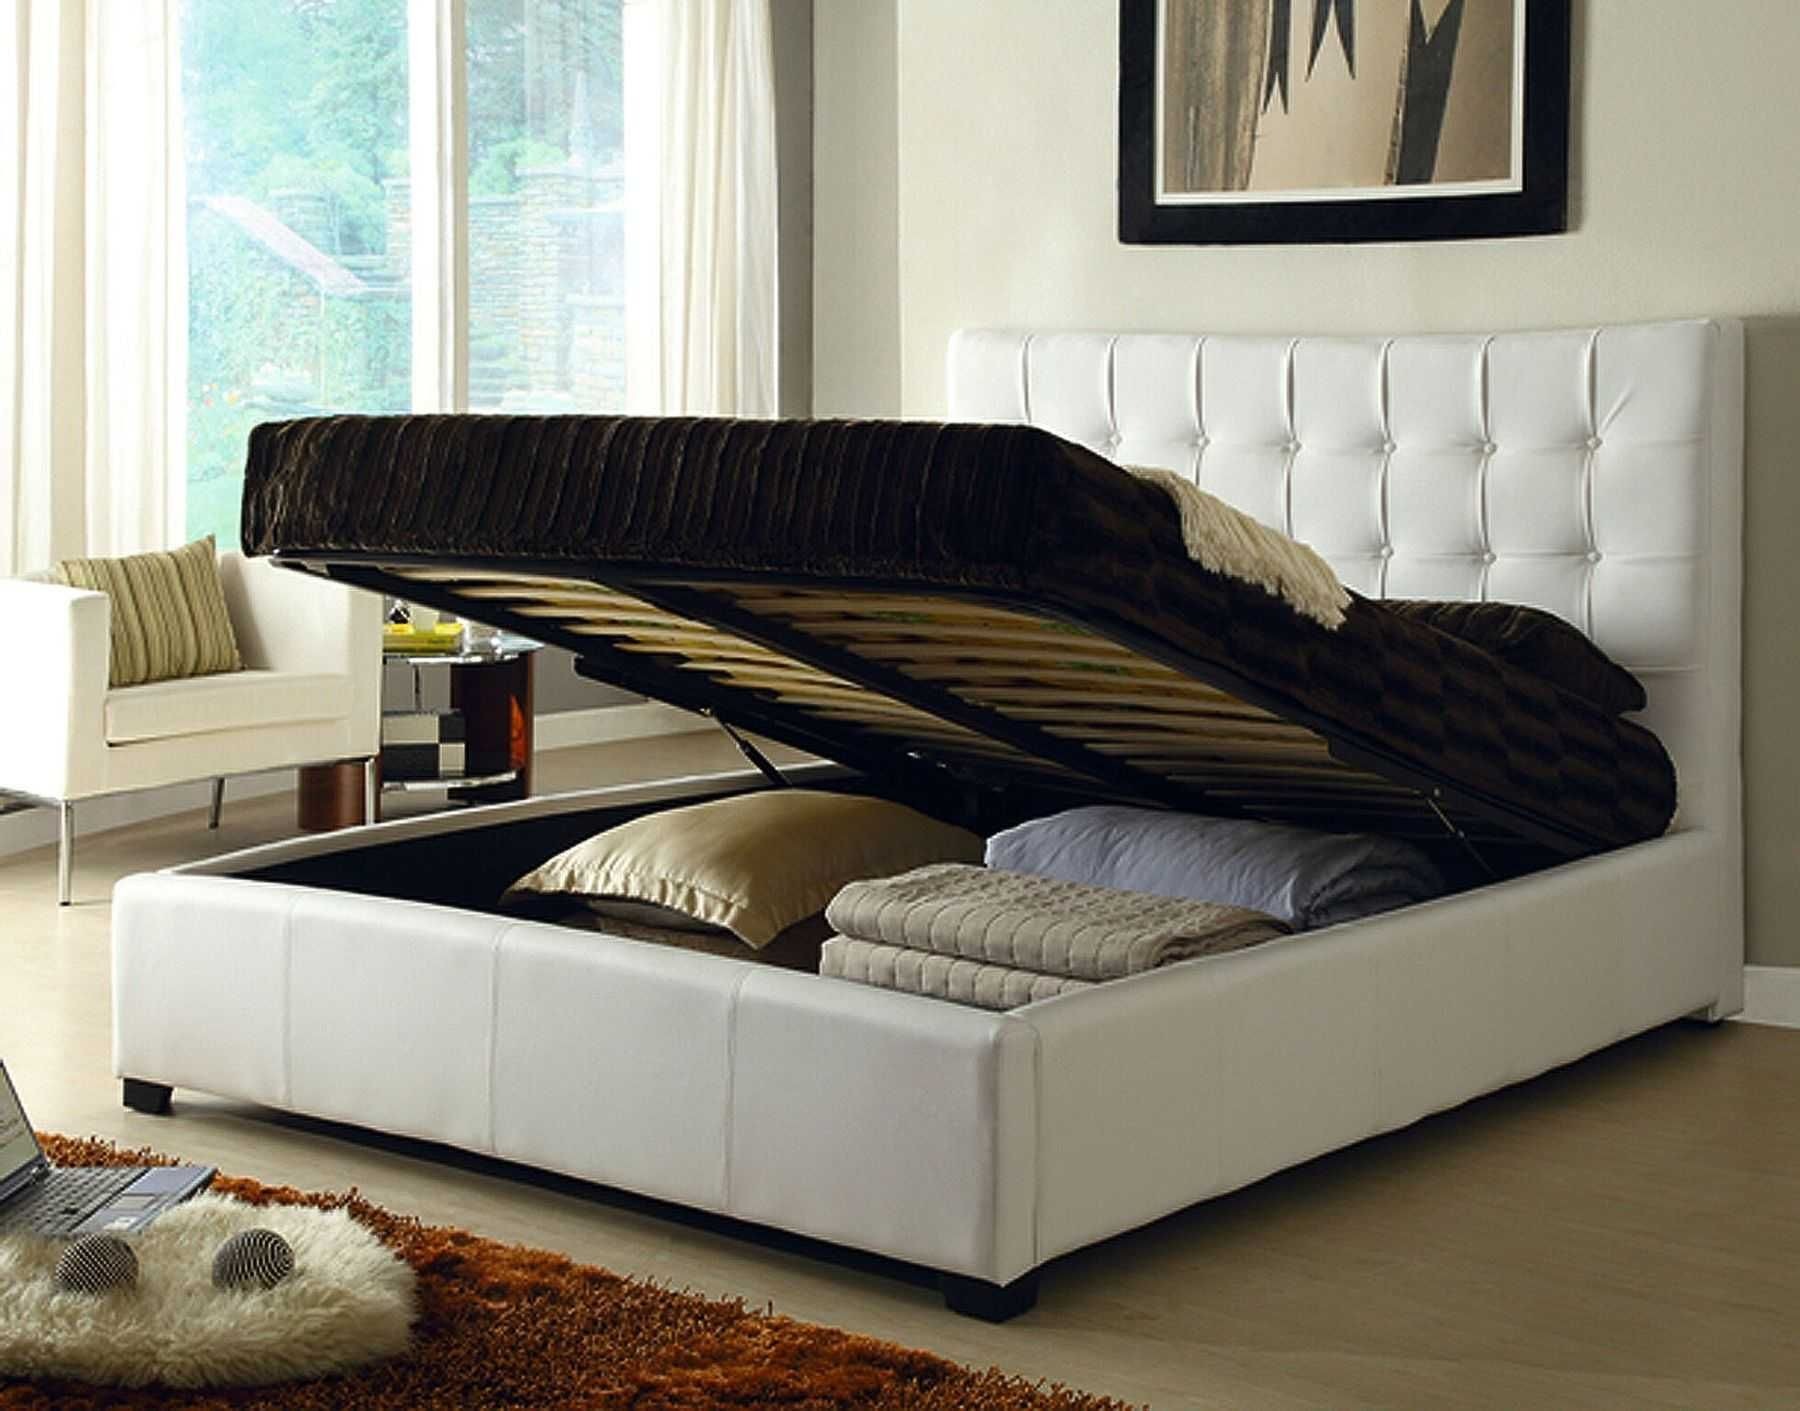 Bett King Size Black Friday King Bett Verkauf Billig King Size Bett Sets Billig